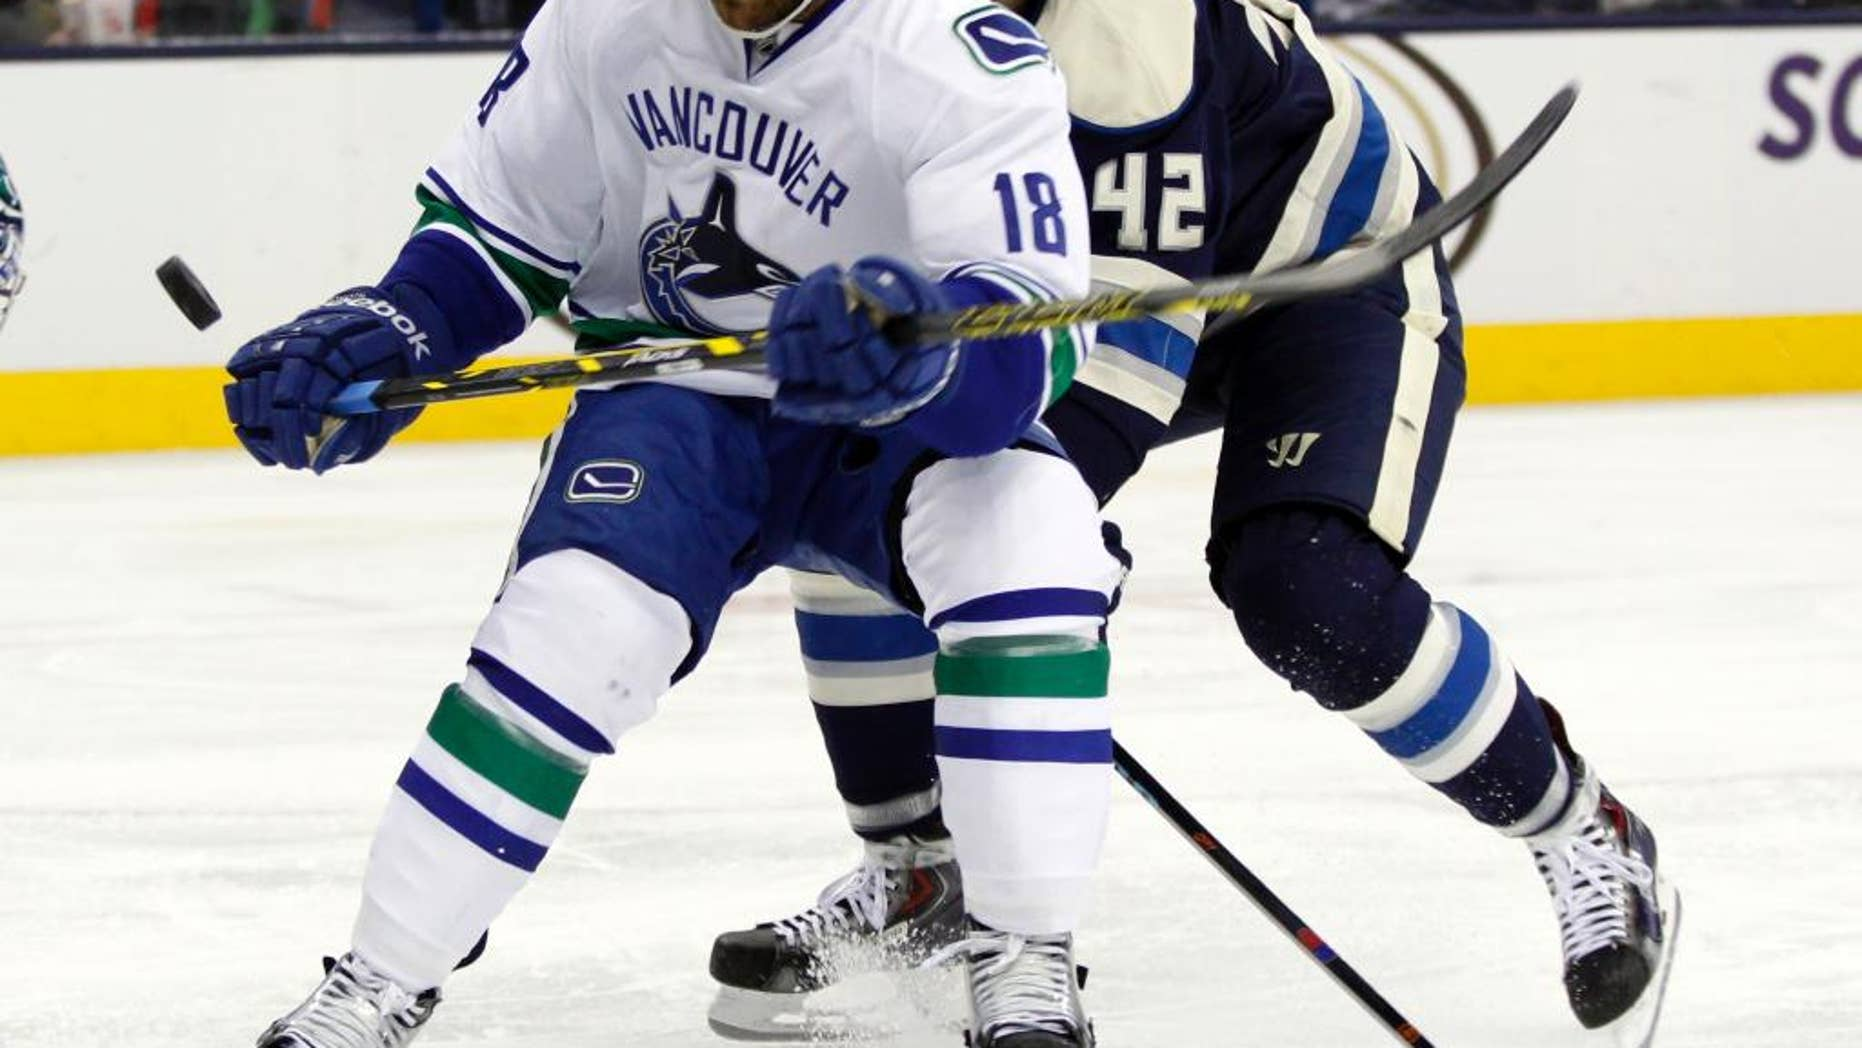 Vancouver Canucks' Ryan Stanton, left, works for the puck in front of Columbus Blue Jackets' Artem Anisimov, of Russia, during the second period of an NHL hockey game in Columbus, Ohio, Friday, Nov. 28, 2014. (AP Photo/Paul Vernon)